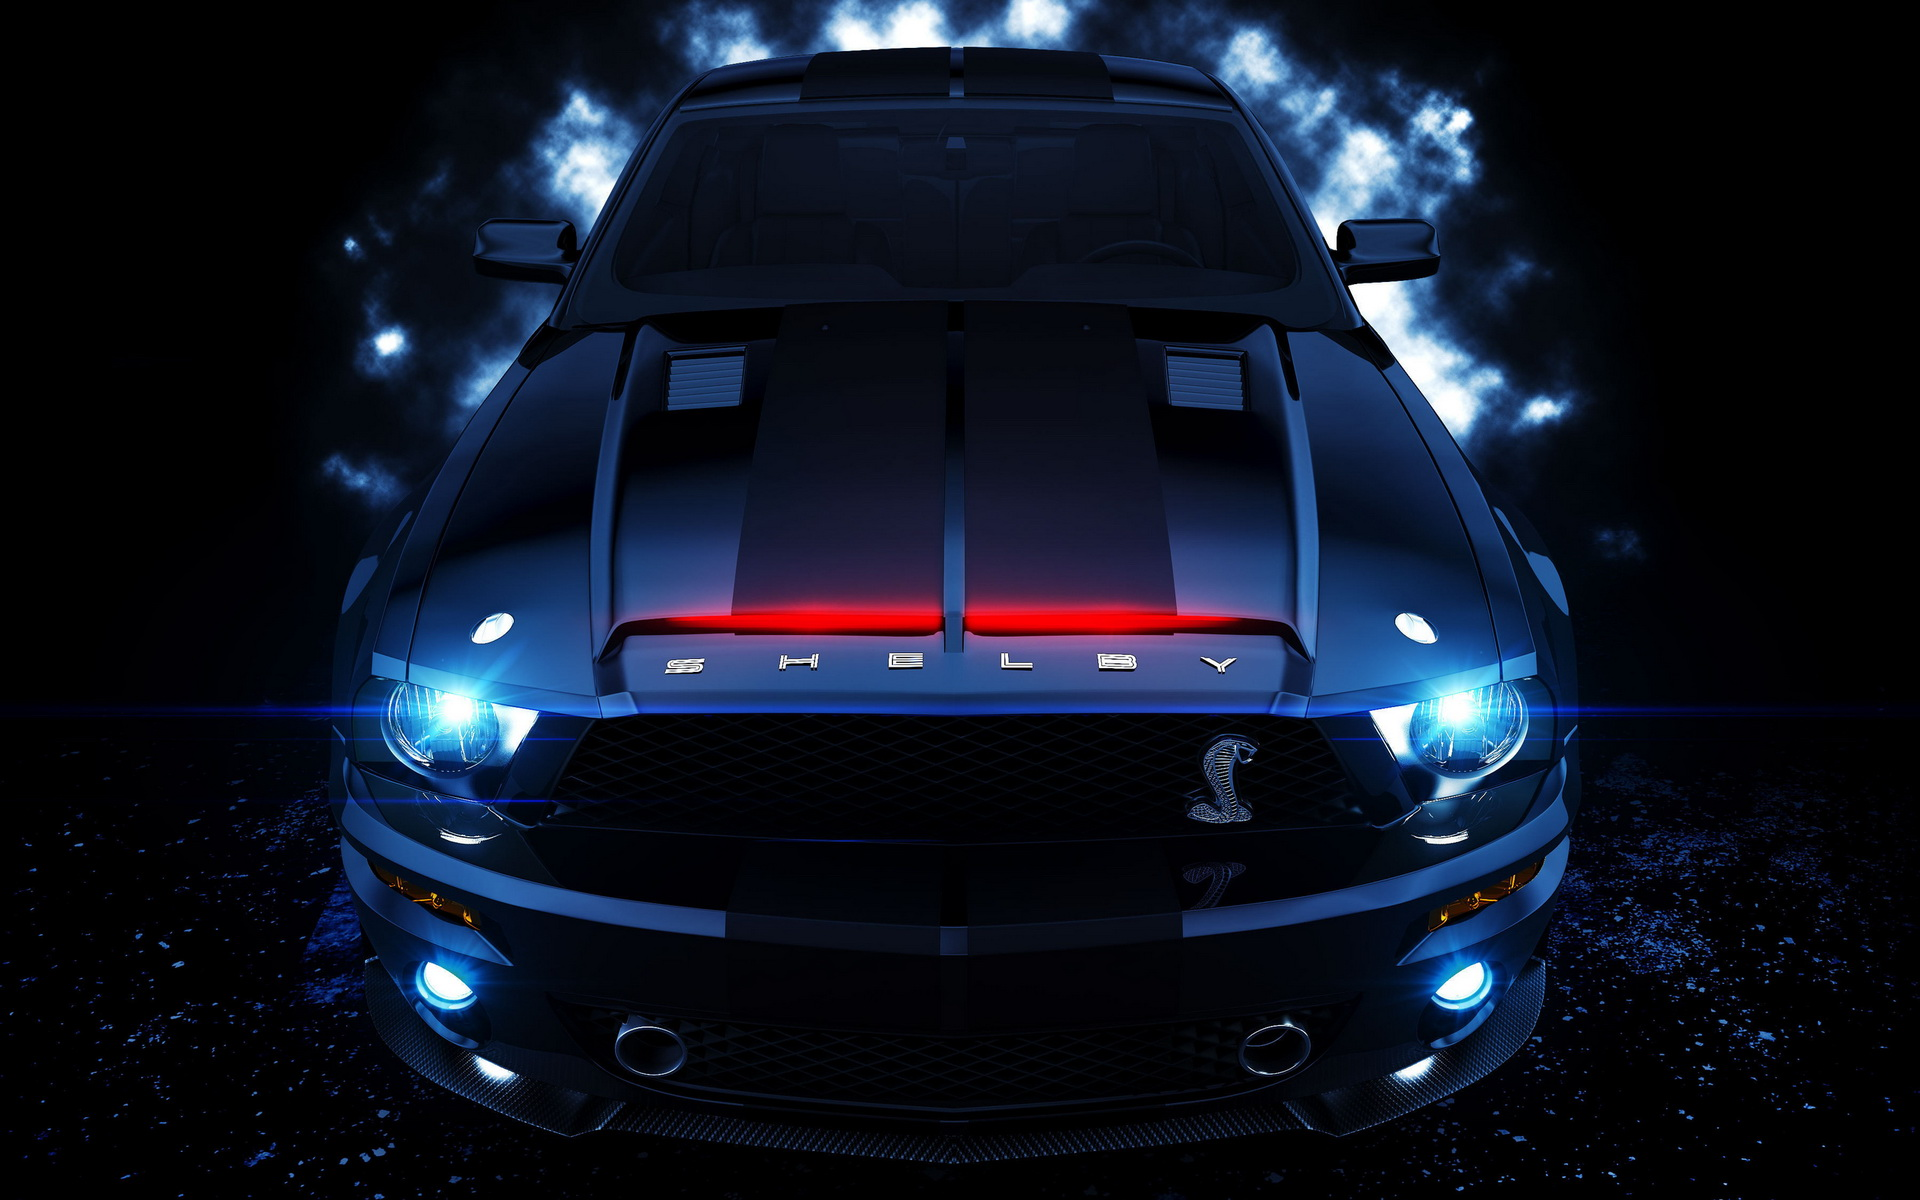 Mustang Shelby Cobra HD Wallpapers Backgrounds 1920x1200